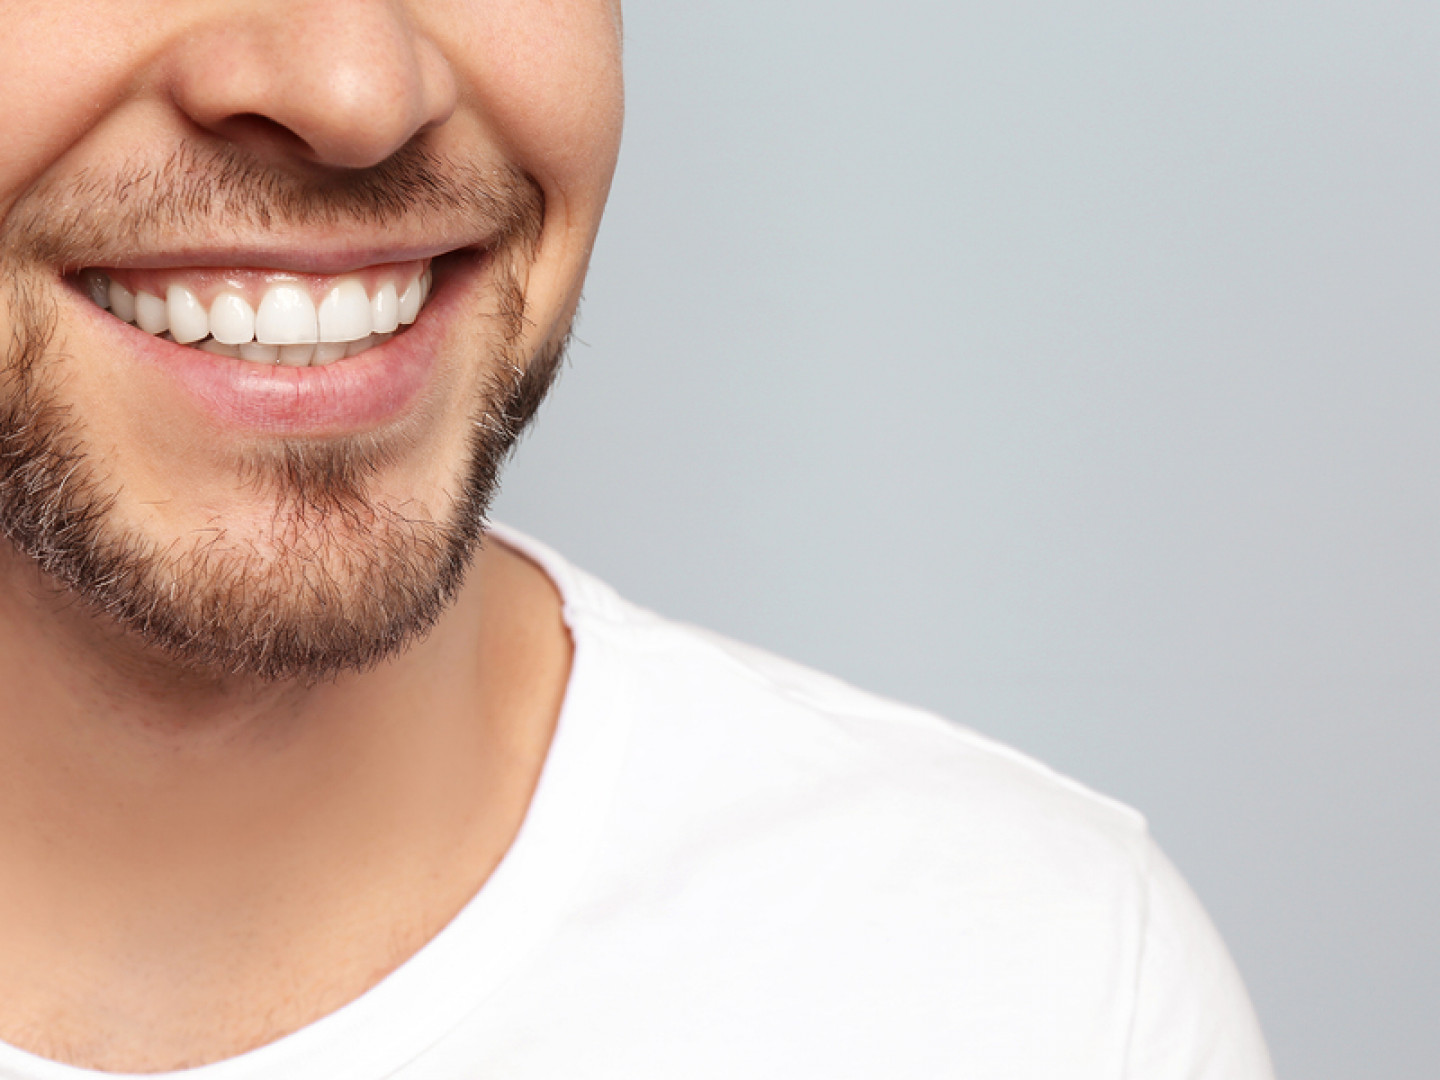 Maintain Healthy Teeth and Gums in Casper, WY